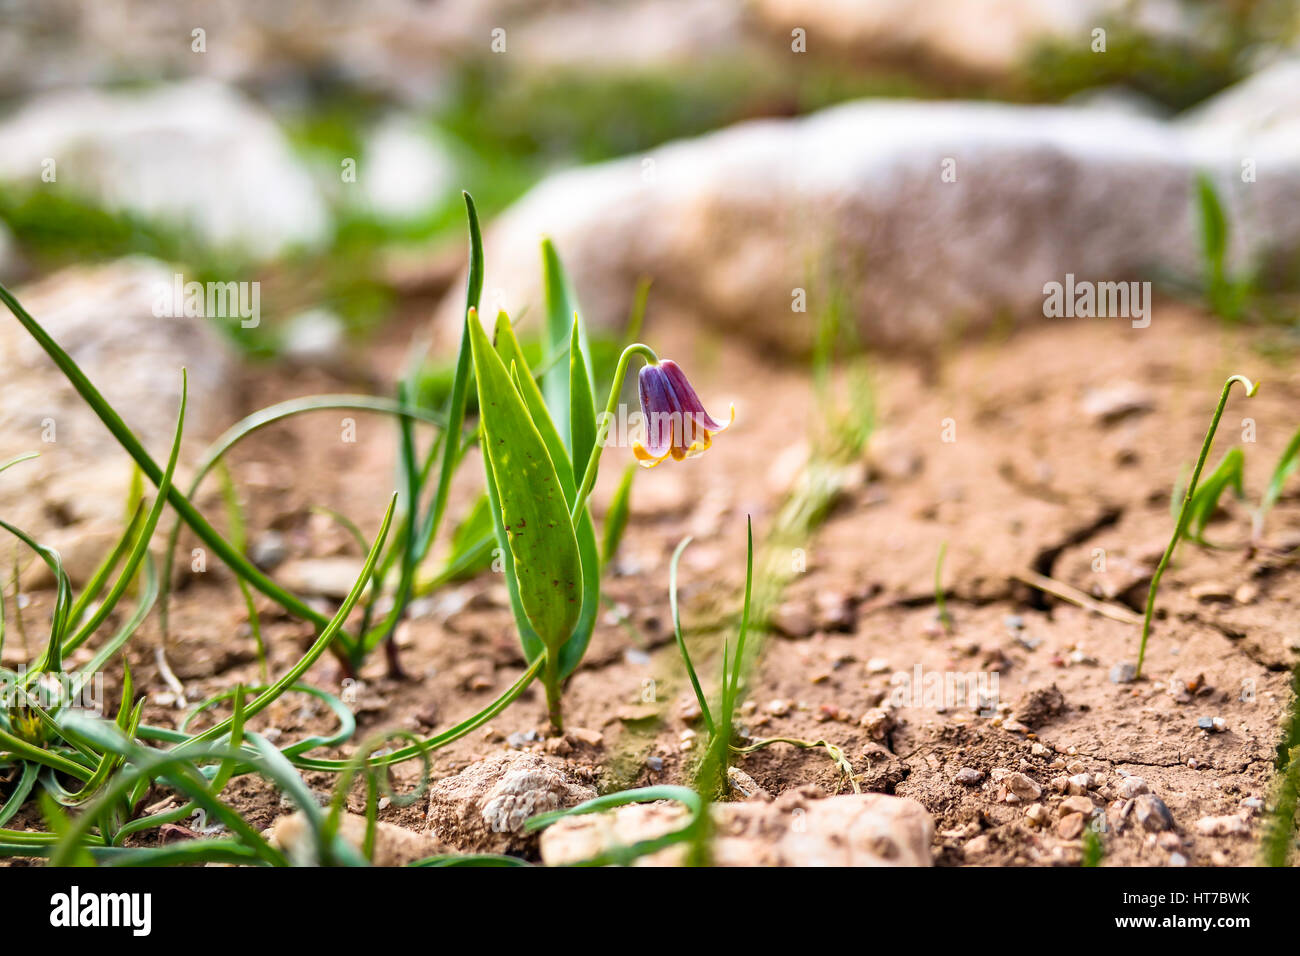 Fritillaria imperialis. ters lale. - Stock Image